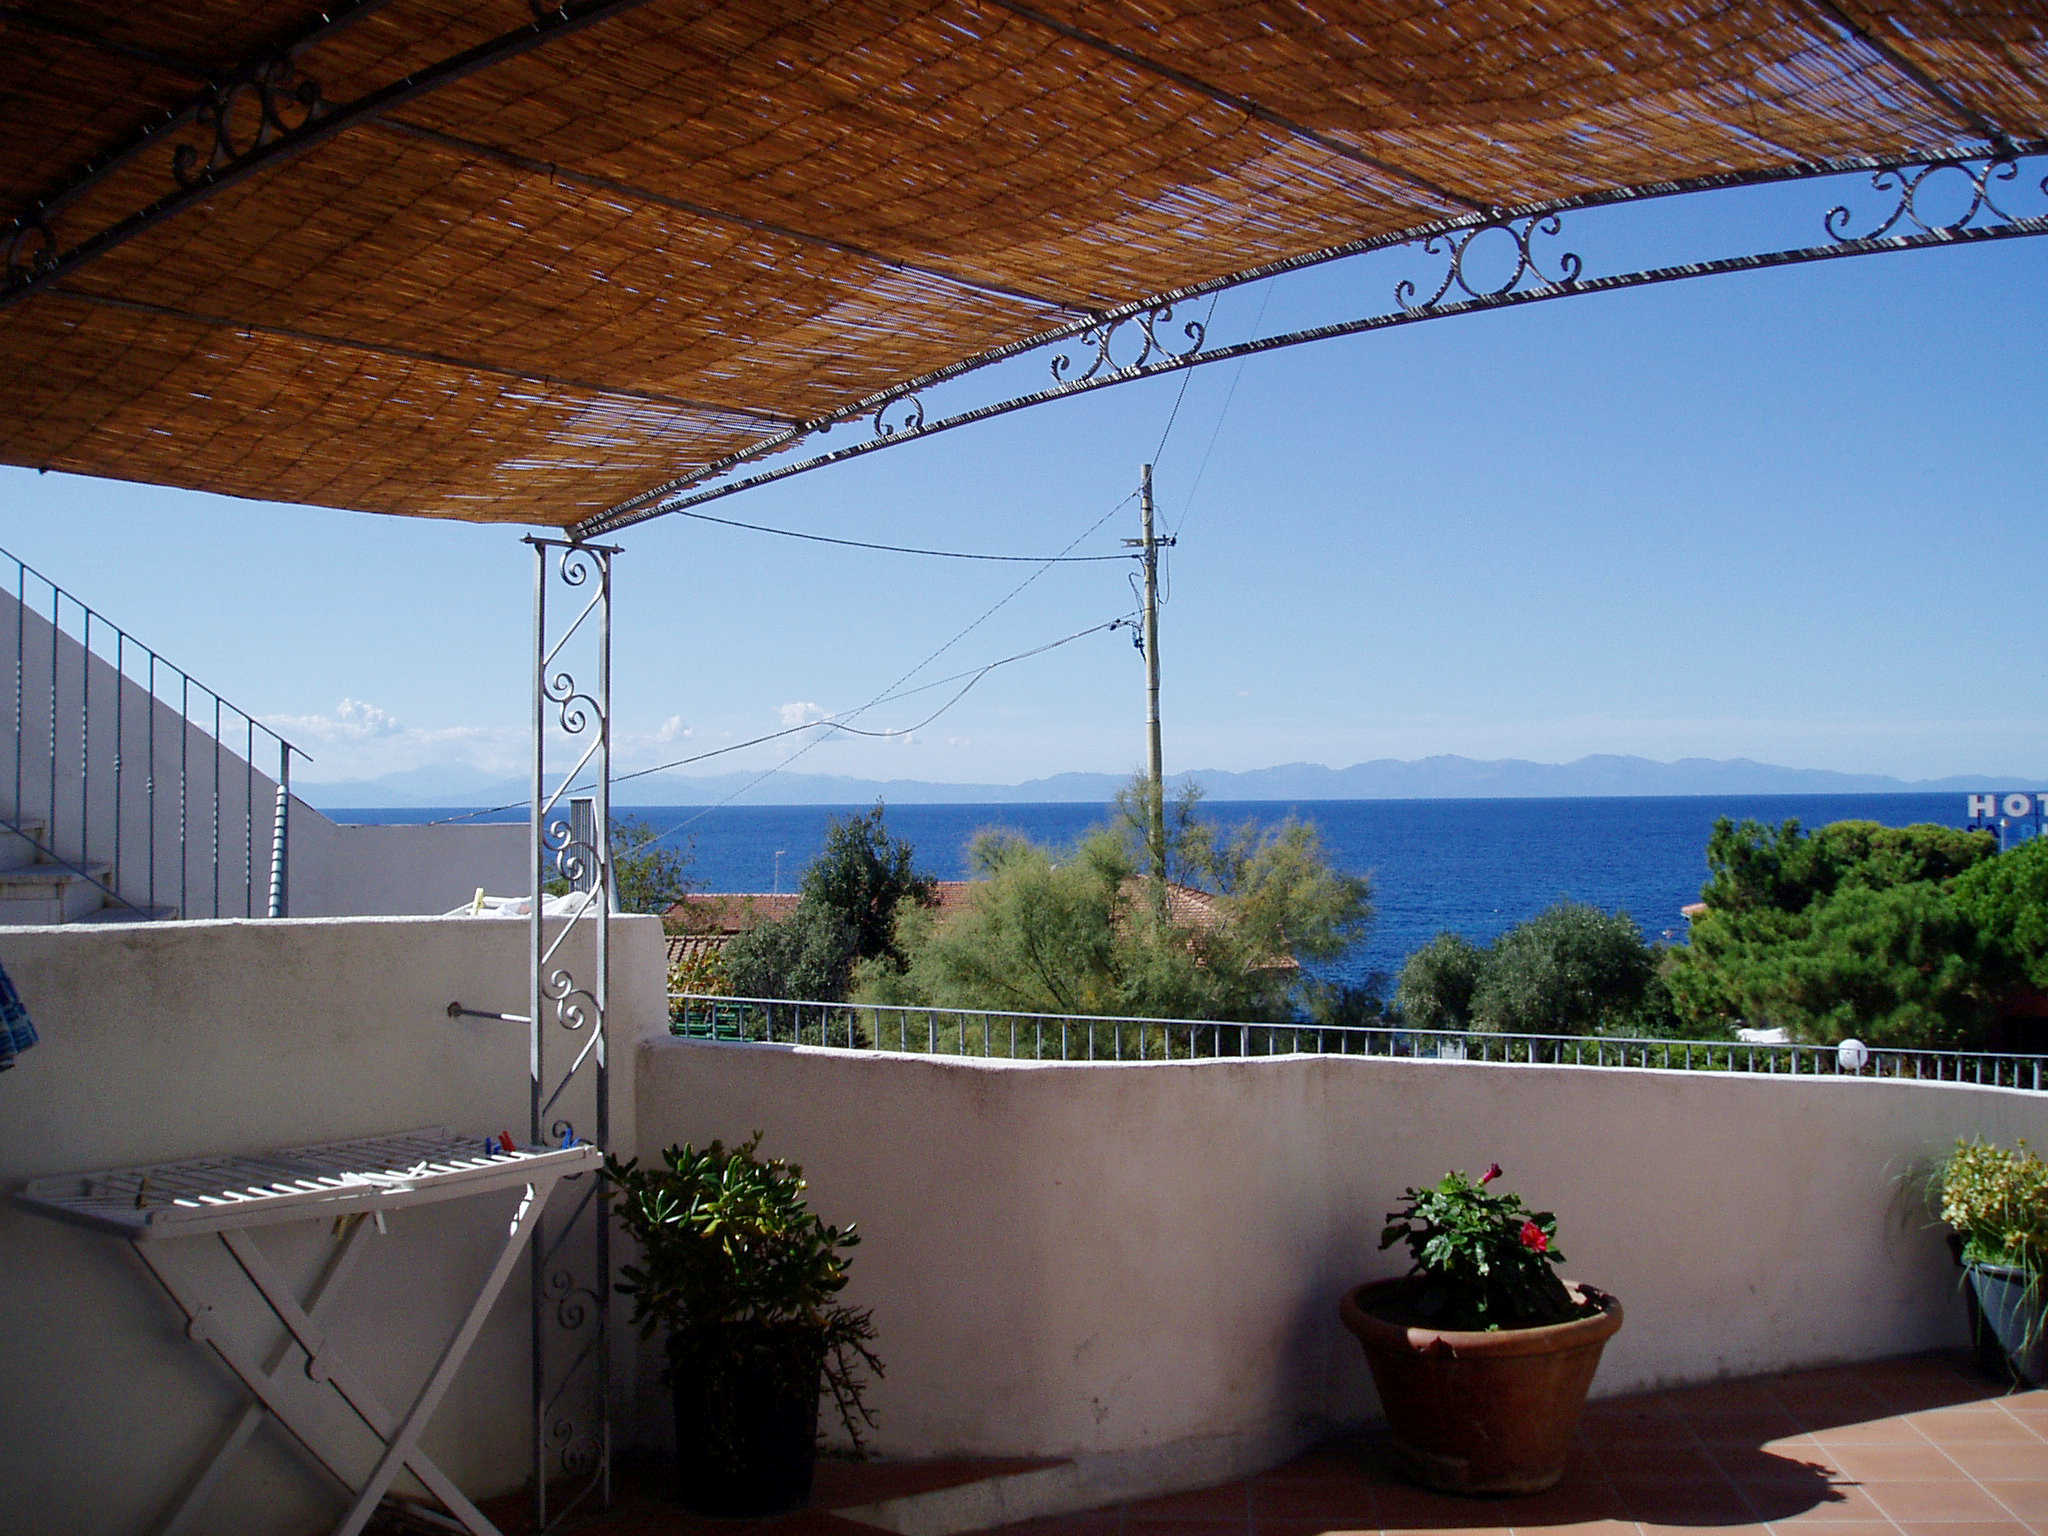 Casa Sole ground floor From 04 - 18.07.2014 still available, sleeps 4, 70m from the beach of POMONTE, one of our most beautiful flats. Euro 110 for day!